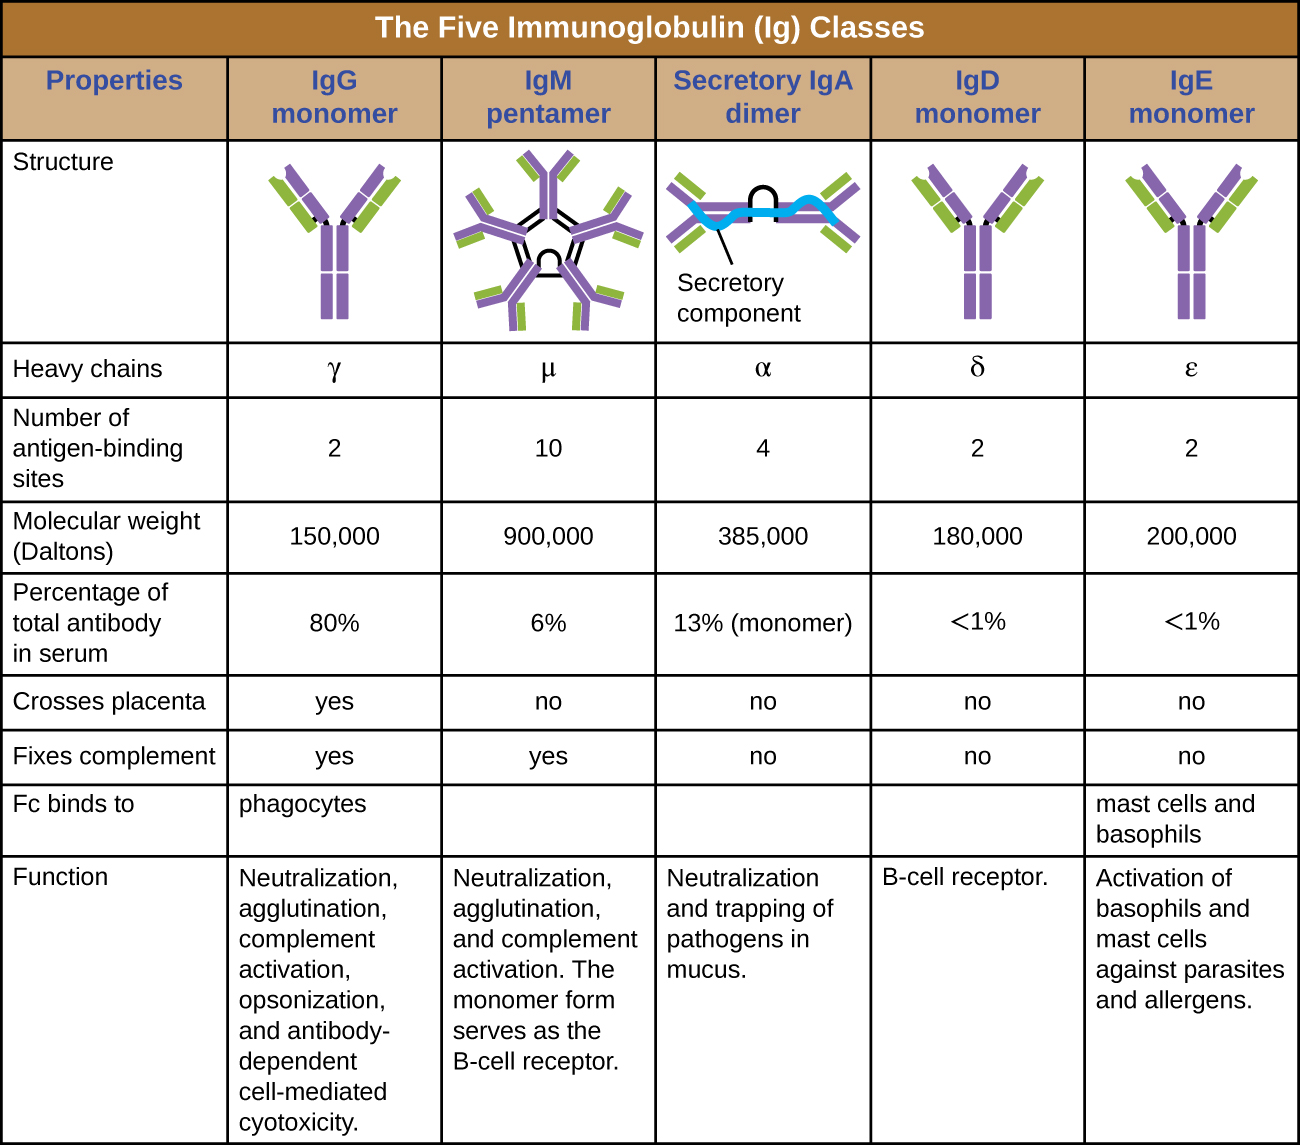 Table titled: The five immunoglobulin (Ig) classes. IgG monomer is a Y shaped molecule; the heavy chain is gamma, it has 2 antigen binding sites and a molecular weight of 150,000 daltons. It makes up 80% of the total antibodies in the serum. It crosses the placenta and fixes compliments and the Fc binds to phagocytes. It's functions are: Neutralization, agglutination, complement activation, opsonization, and antibody-dependent cell-mediated cytotoxicity. IgM pentamer is 5 Y's bound at their bases; the heavy chain is mu, it has 10 antigen binding sites and a molecular weight of 900,000 daltons. It makes up 6% of the total antibodies in the serum. It does not cross the placenta but does fix compliments and the Fc does not bind to a particular cell type. It's functions are: Neutralization, agglutination, and complement activation. The monomer form serves as the B cell receptor. IgA dimer is 2 Y's bound at their bases; the heavy chain is alpha, it has 4 antigen binding sites and a molecular weight of 385,000 daltons. It makes up 13% of the total antibodies in the serum. It does not cross the placenta nor fix compliments and the Fc does not bind to a particular cell type. It's functions are: Neutralization and trapping of pathogens in mucus. IgD monomer is 1 Y; the heavy chain is delta, it has 2 antigen binding sites and a molecular weight of 180,000 daltons. It makes up <1% of the total antibodies in the serum. It does not cross the placenta nor fix compliments and the Fc does not bind to a particular cell type. It's functions are: B cell receptors. IgE monomer is 1 Y; the heavy chain is epsilon, it has 2 antigen binding sites and a molecular weight of 200,000 daltons. It makes up <1% of the total antibodies in the serum. It does not cross the placenta nor fix compliments. The Fc binds to mast cells and basophils. It's functions are: Activation of basophils and mast cells against parasites and allergens.